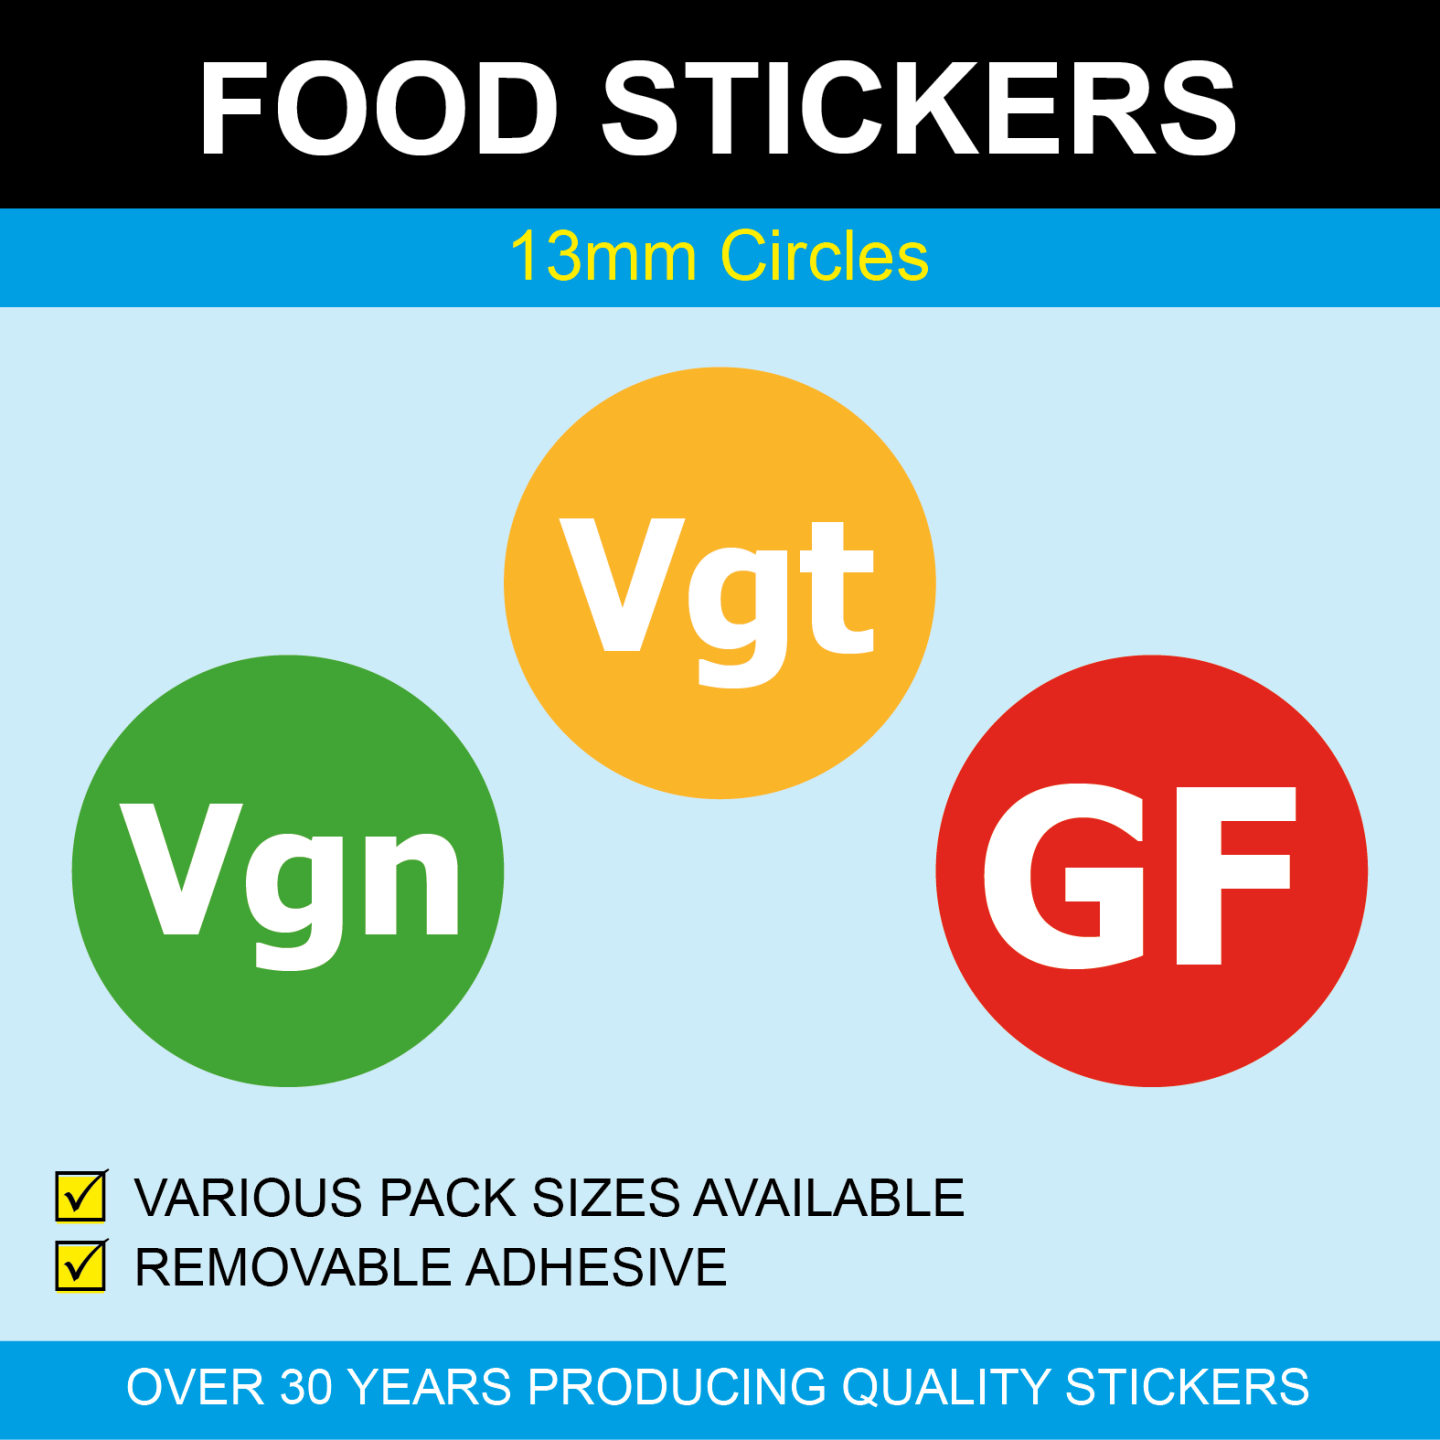 Details about 13mm - Food Stickers / Labels - Vgt Vegetarian / Vgn Vegan /  GF Gluten Free